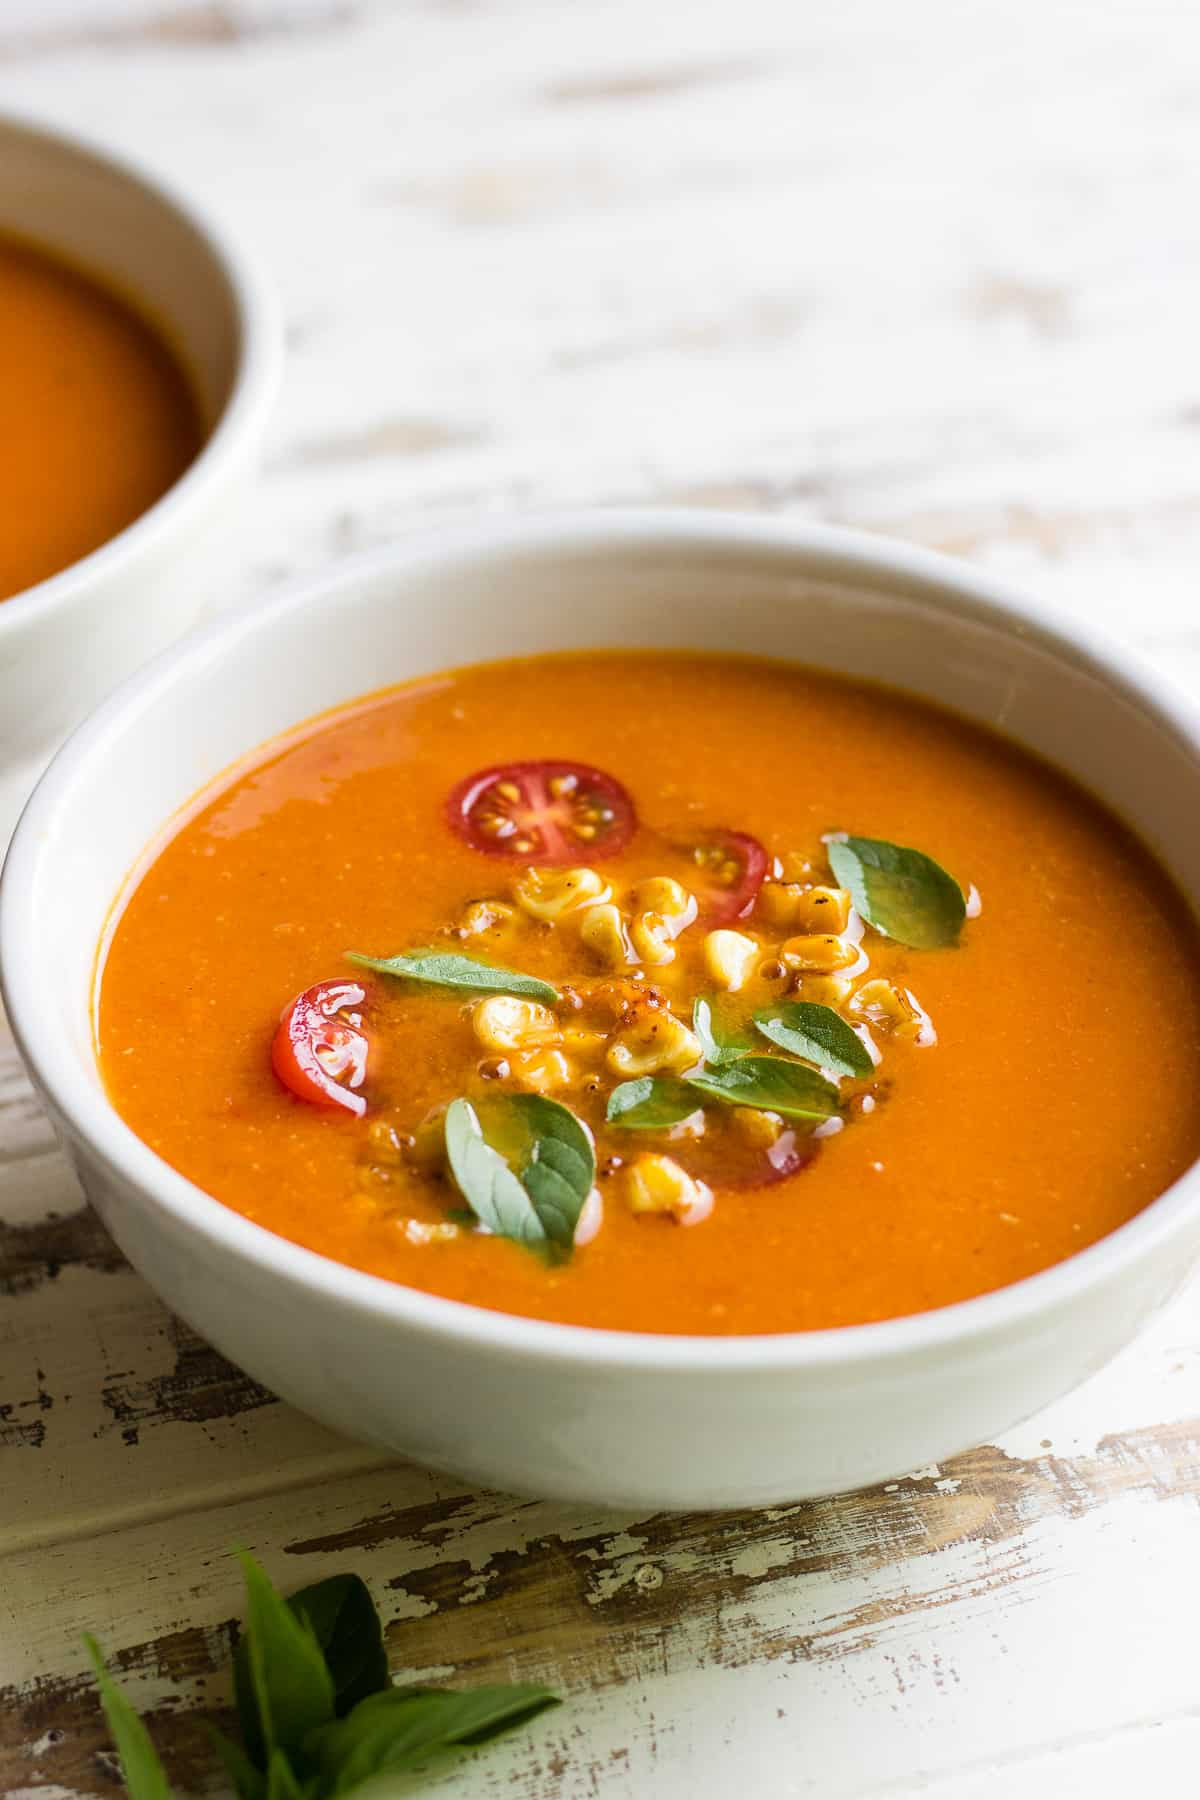 Heirloom Tomato Soup with basil and corn